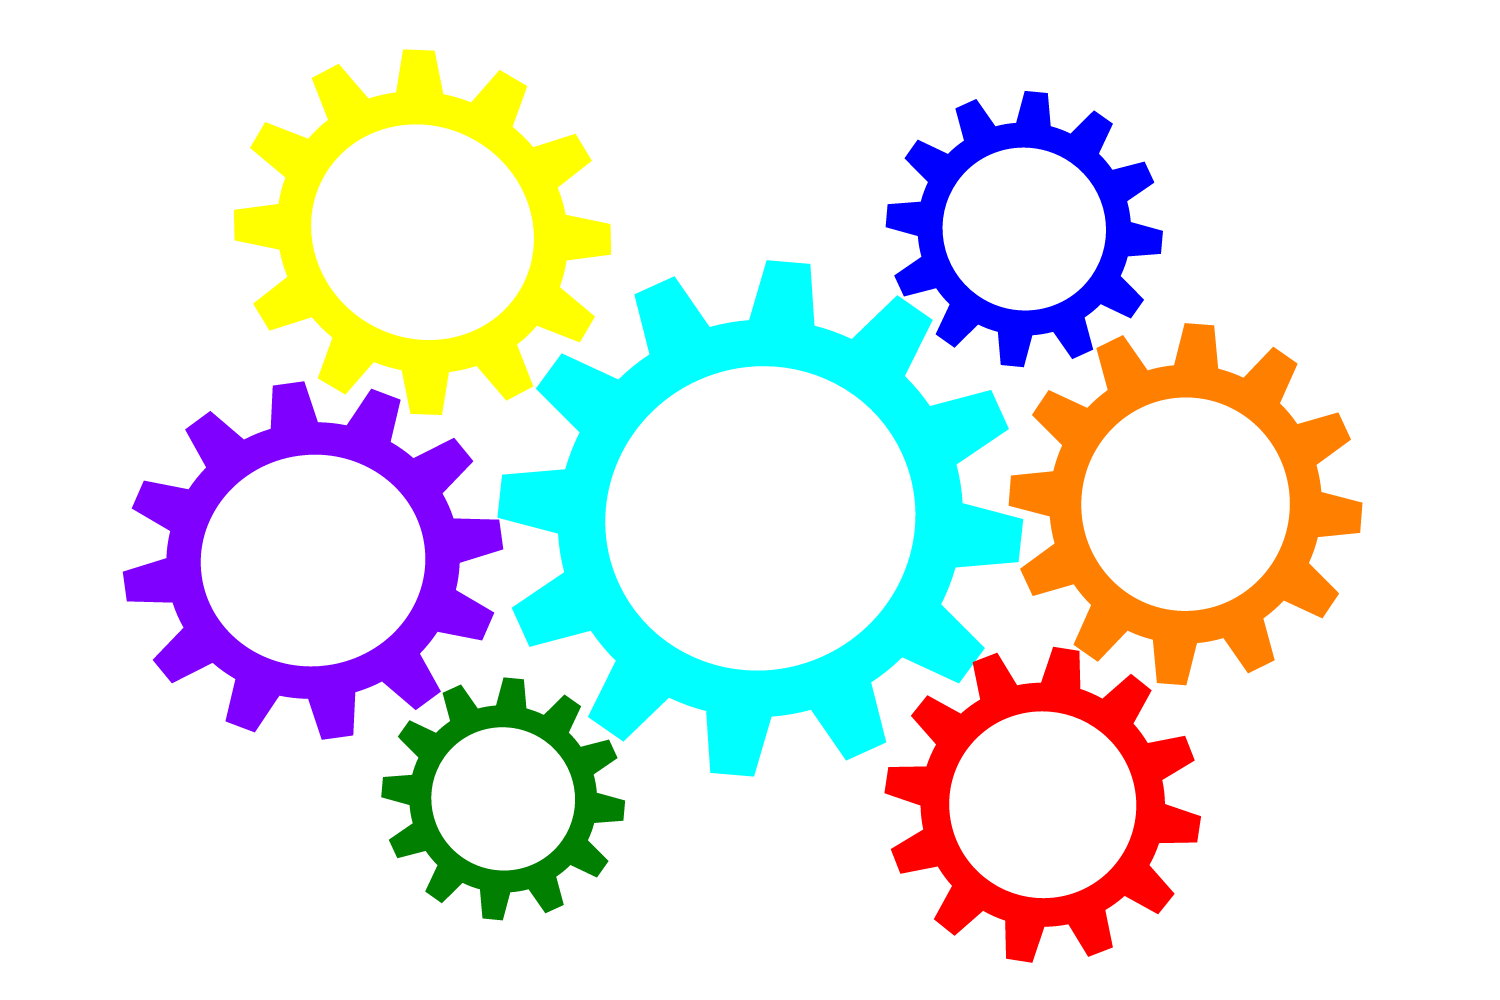 Gears clipart clock gear On The collection gears Animated